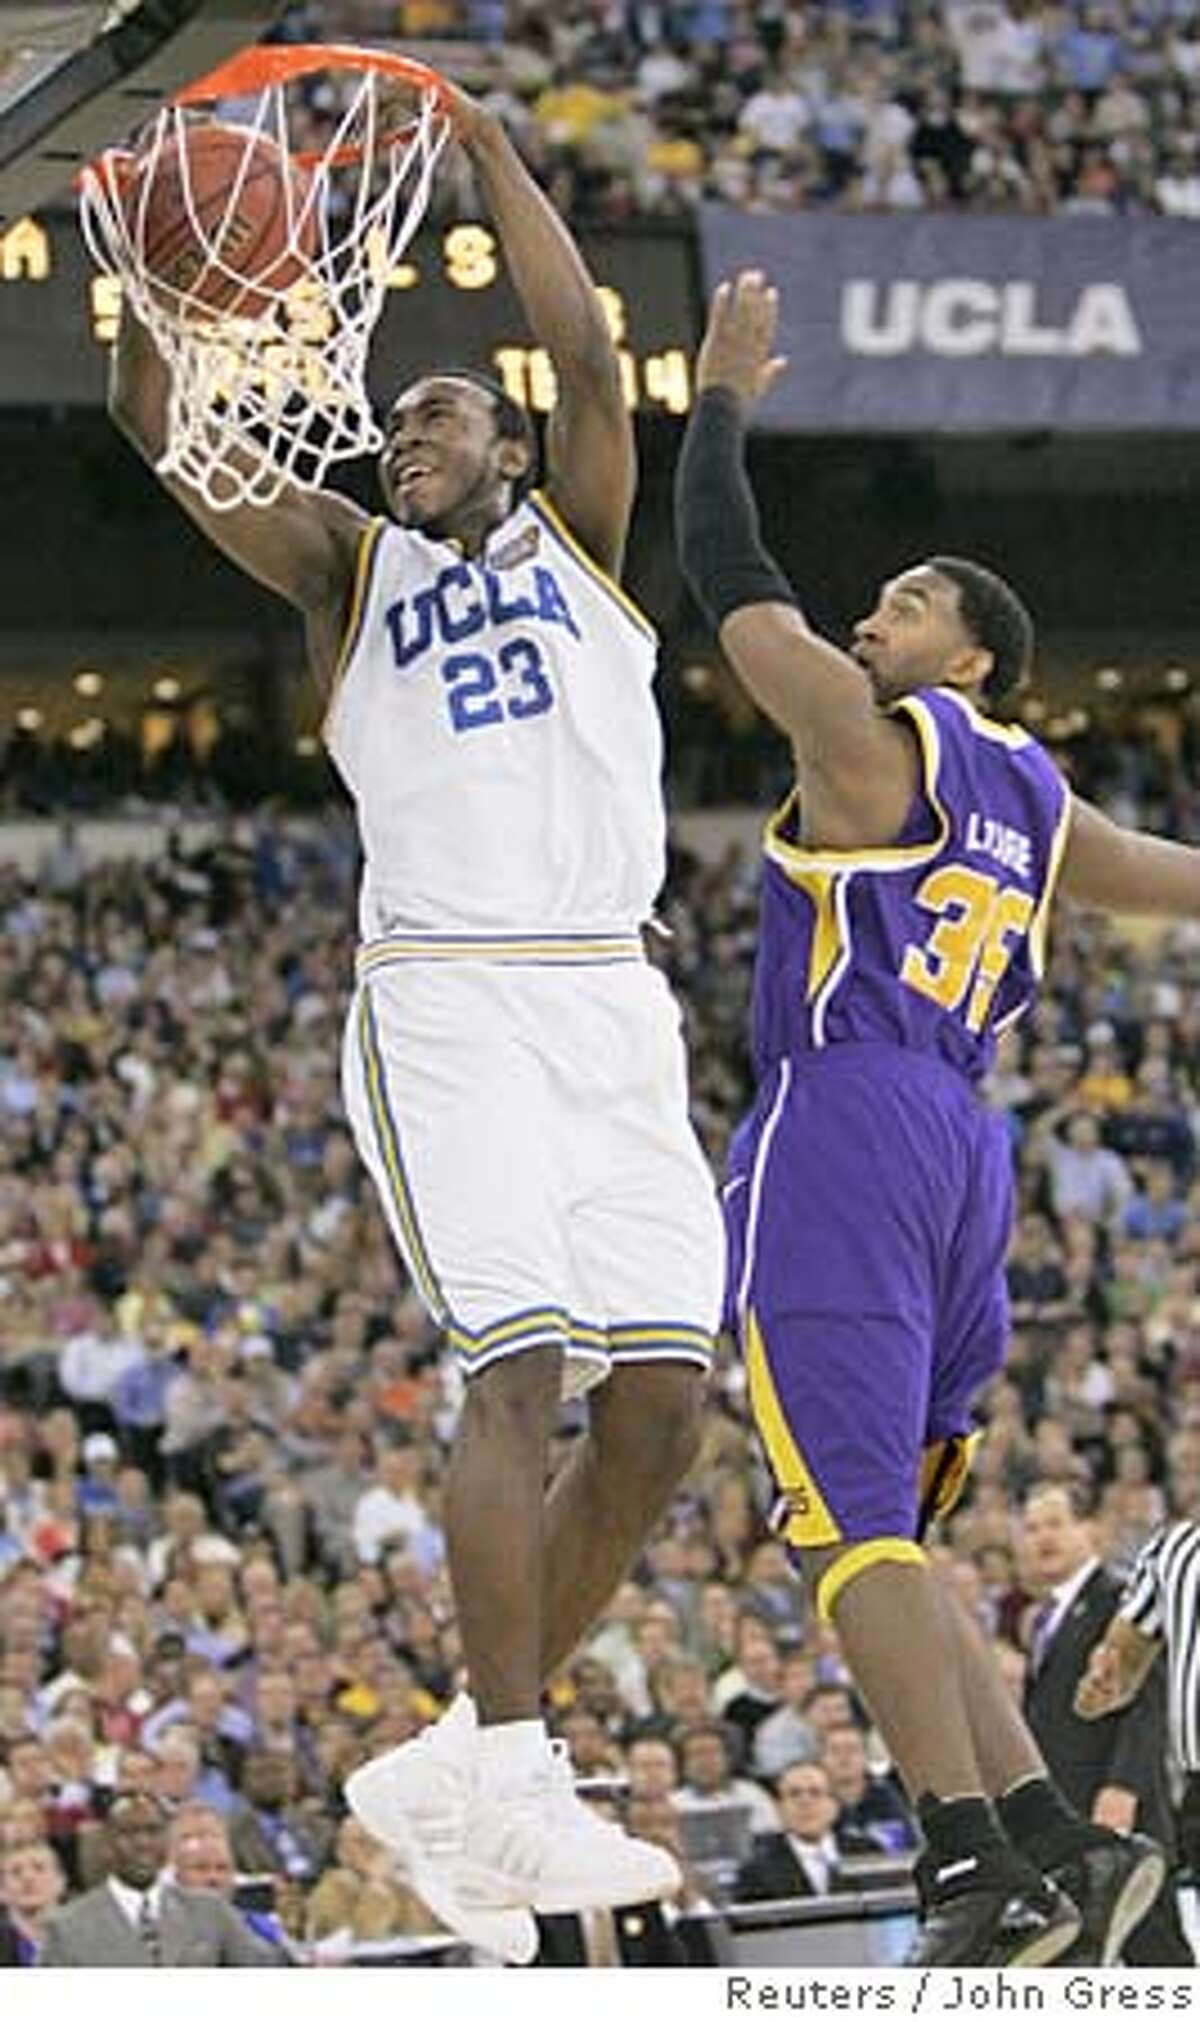 UCLA Bruins' Luc Richard Mbah a Moute (L) dunks the basketball over LSU Tigers' Darnell Lazare (R) during their semi-final basketball game at the men's NCAA Final Four in Indianapolis, April 1, 2006. REUTERS/John GressRan on: 04-02-2006 UCLAs Luc Richard Mbah a Moute shows Darnell Lazare that he was the best big man on the floor.Ran on: 04-02-2006 UCLAs Luc Richard Mbah a Moute shows Darnell Lazare that he was the best big man on the floor.Ran on: 04-02-2006 UCLAs Luc Richard Mbah a Moute shows Darnell Lazare that he was the best big man on the floor.